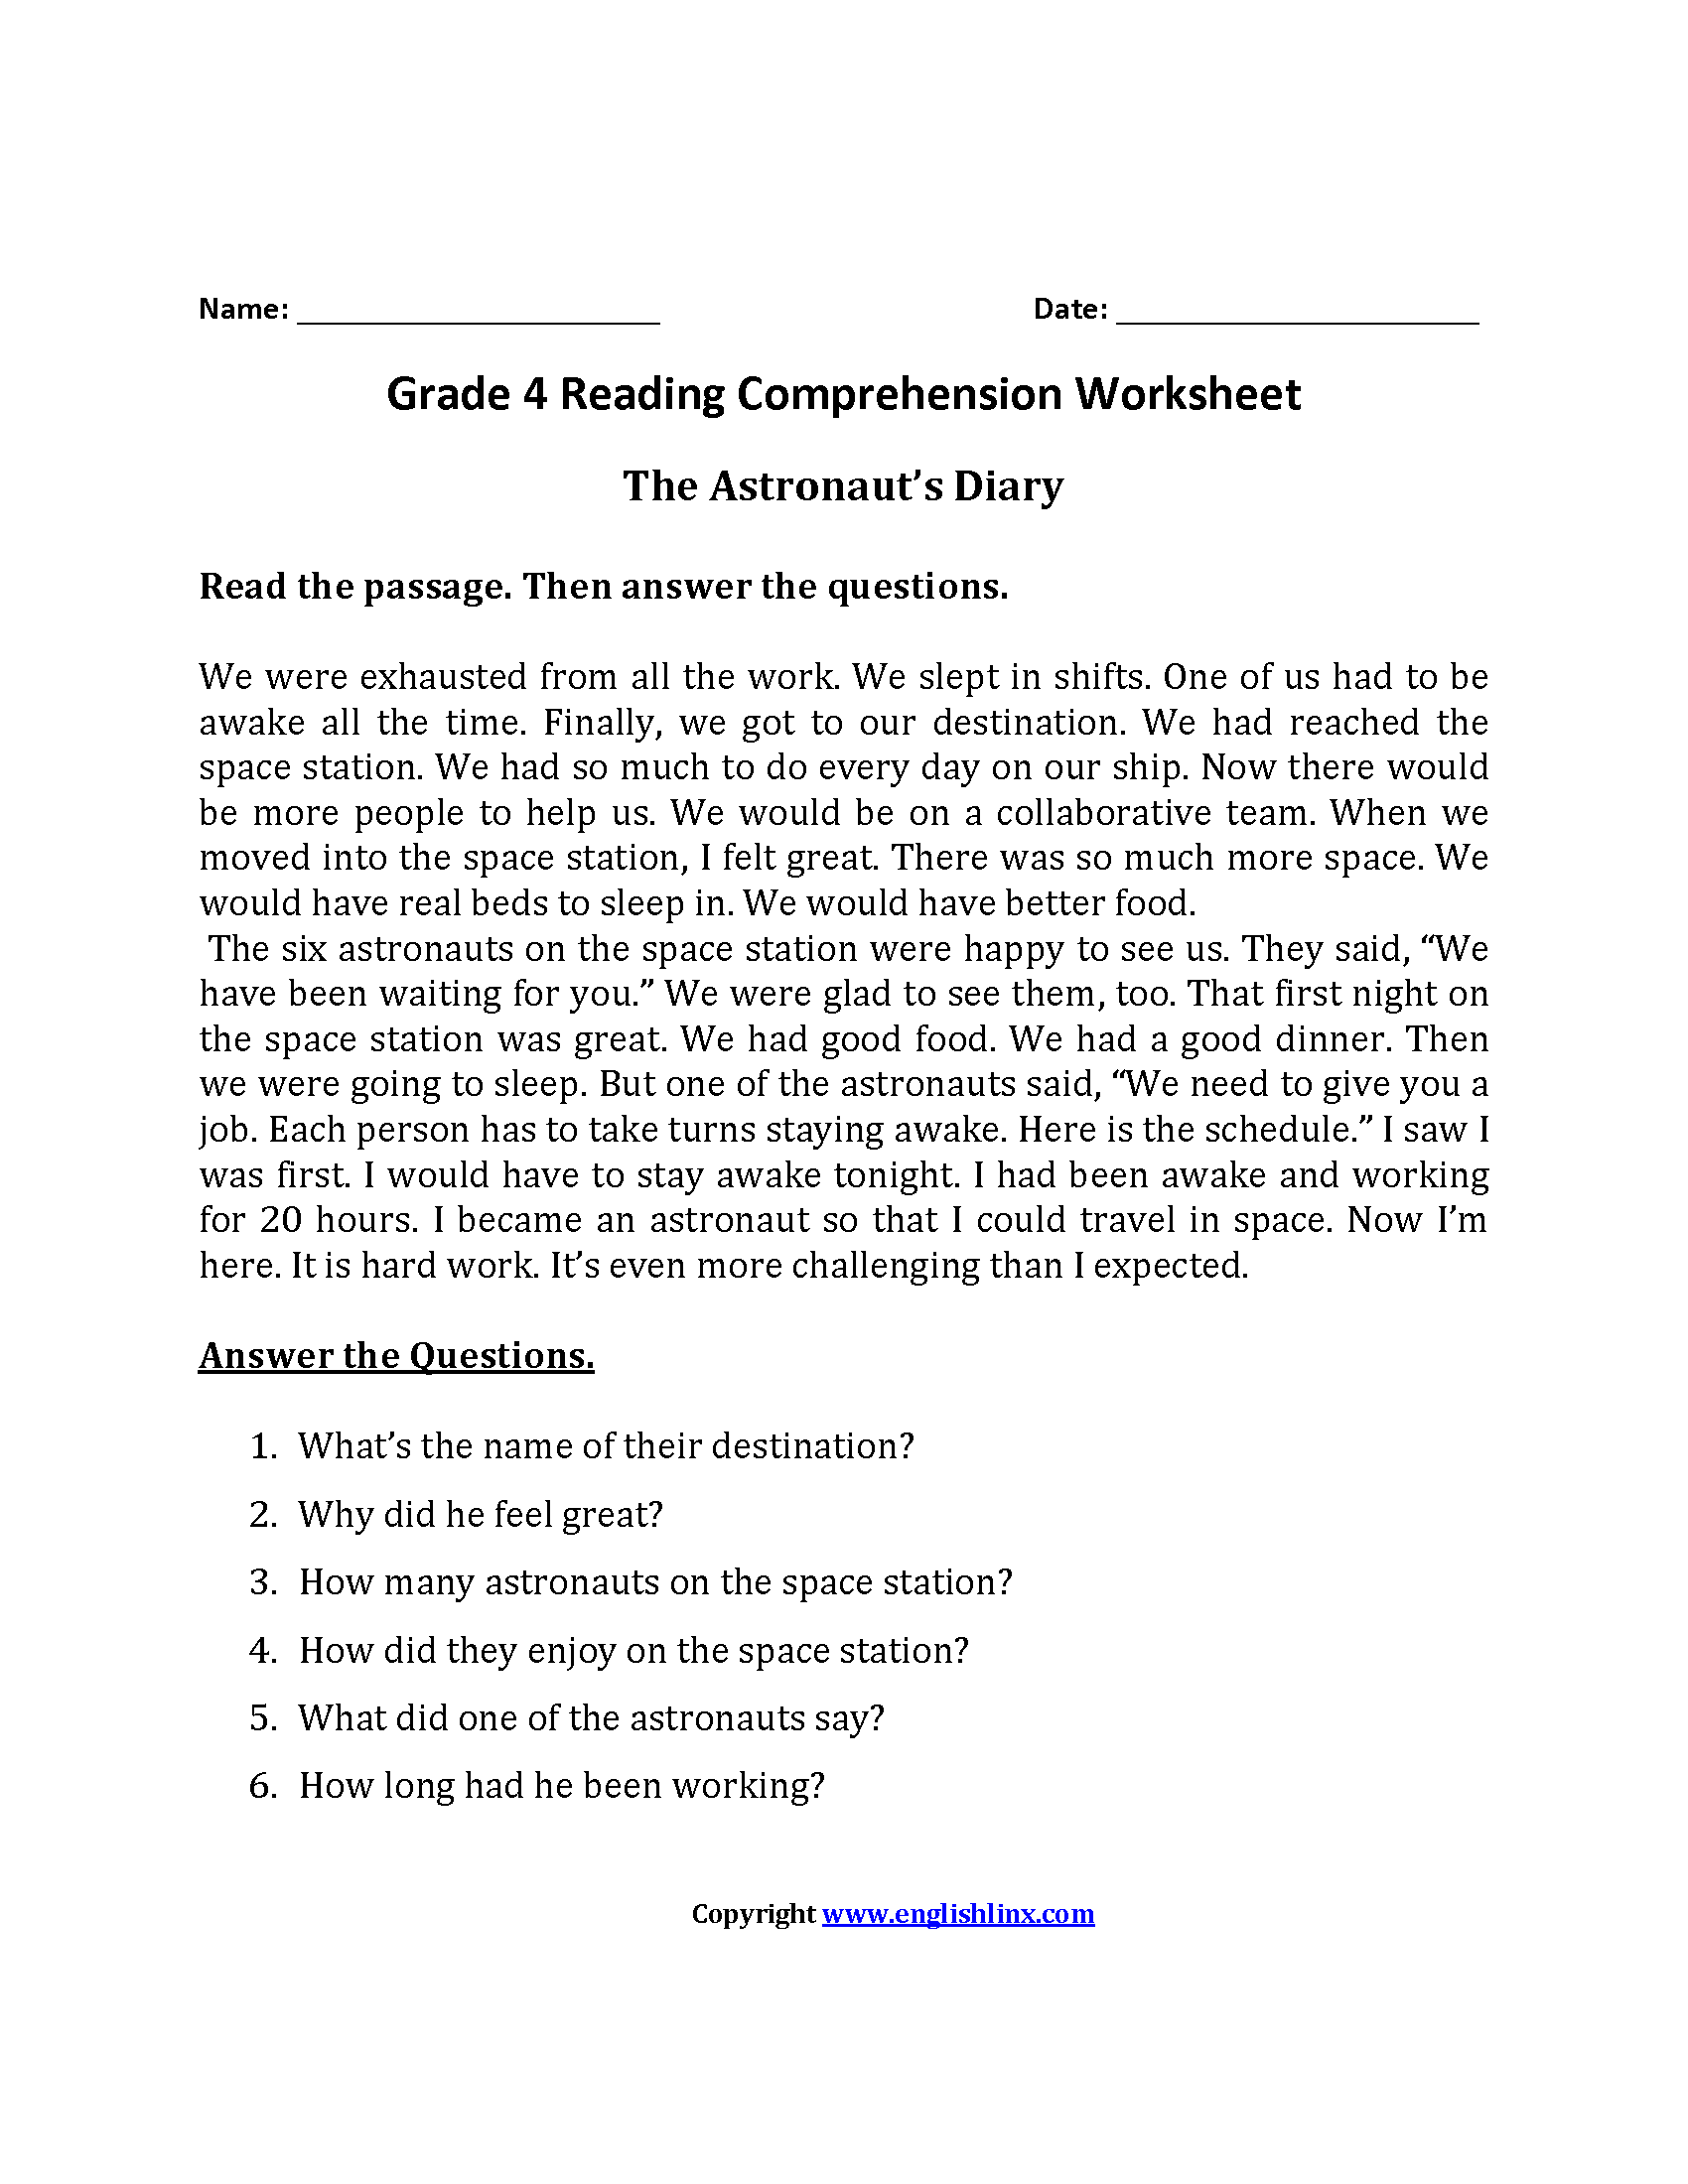 Worksheet Fourth Grade Reading Comprehension Worksheet reading worksheets fourth grade worksheets